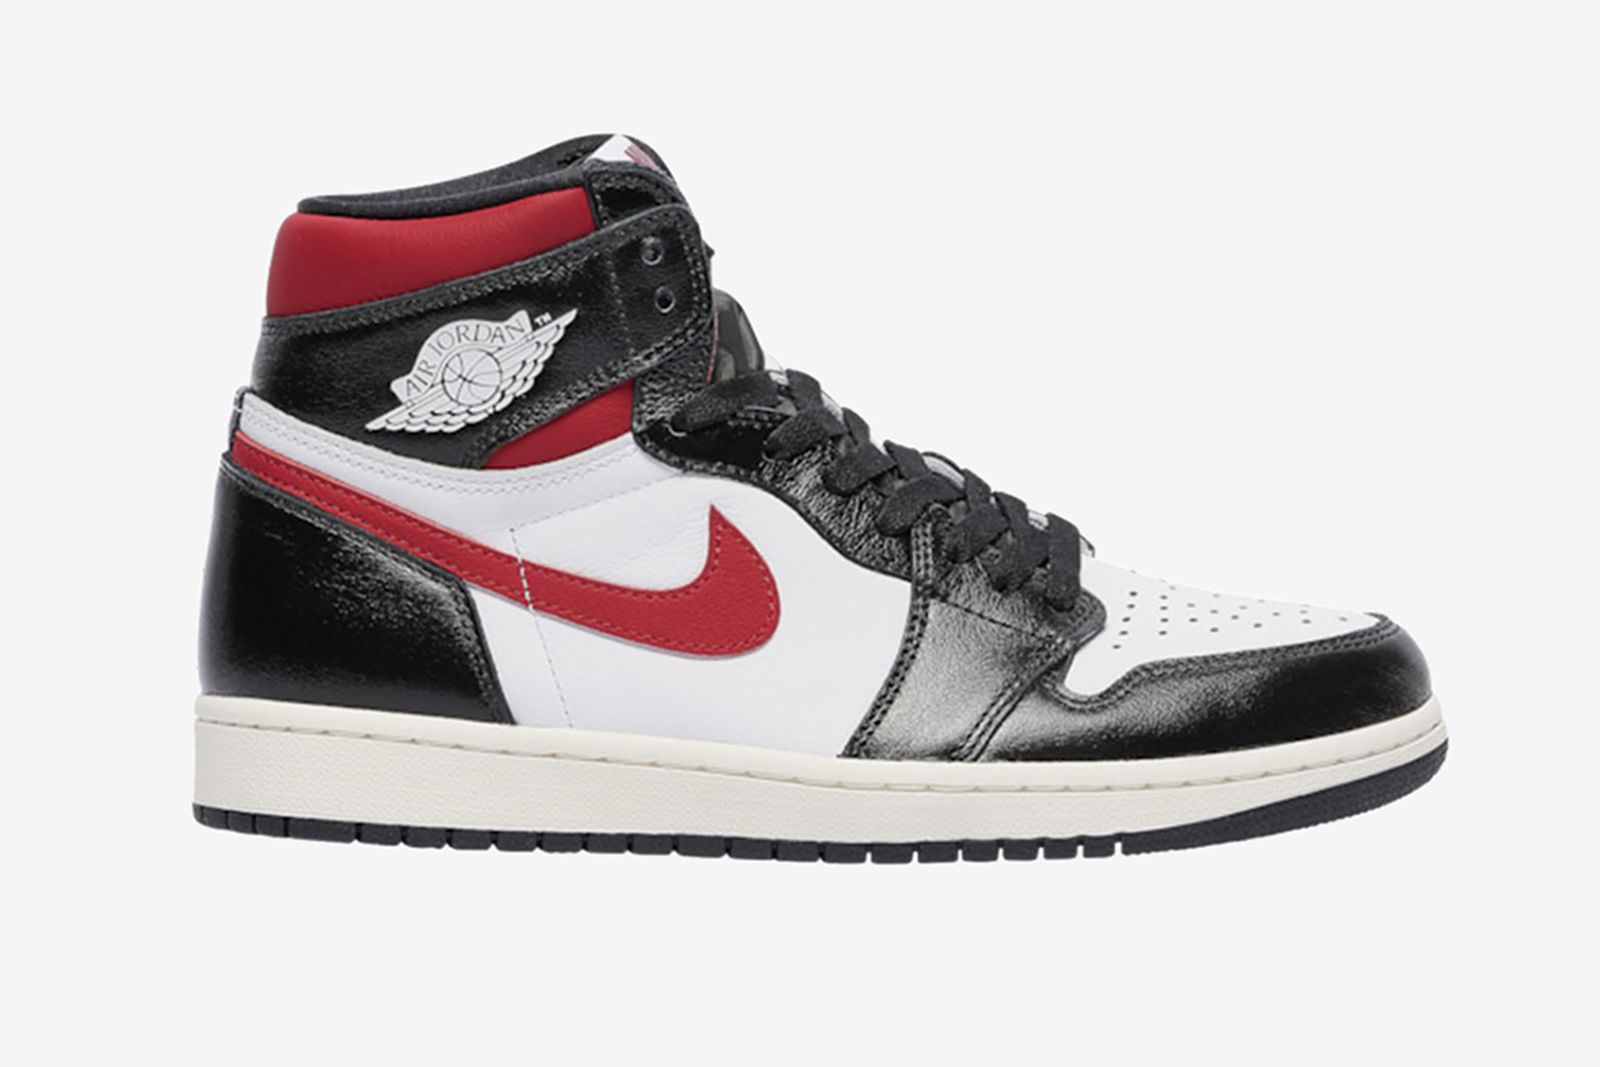 10 of the Best Jordans You Can Still Cop at Retail